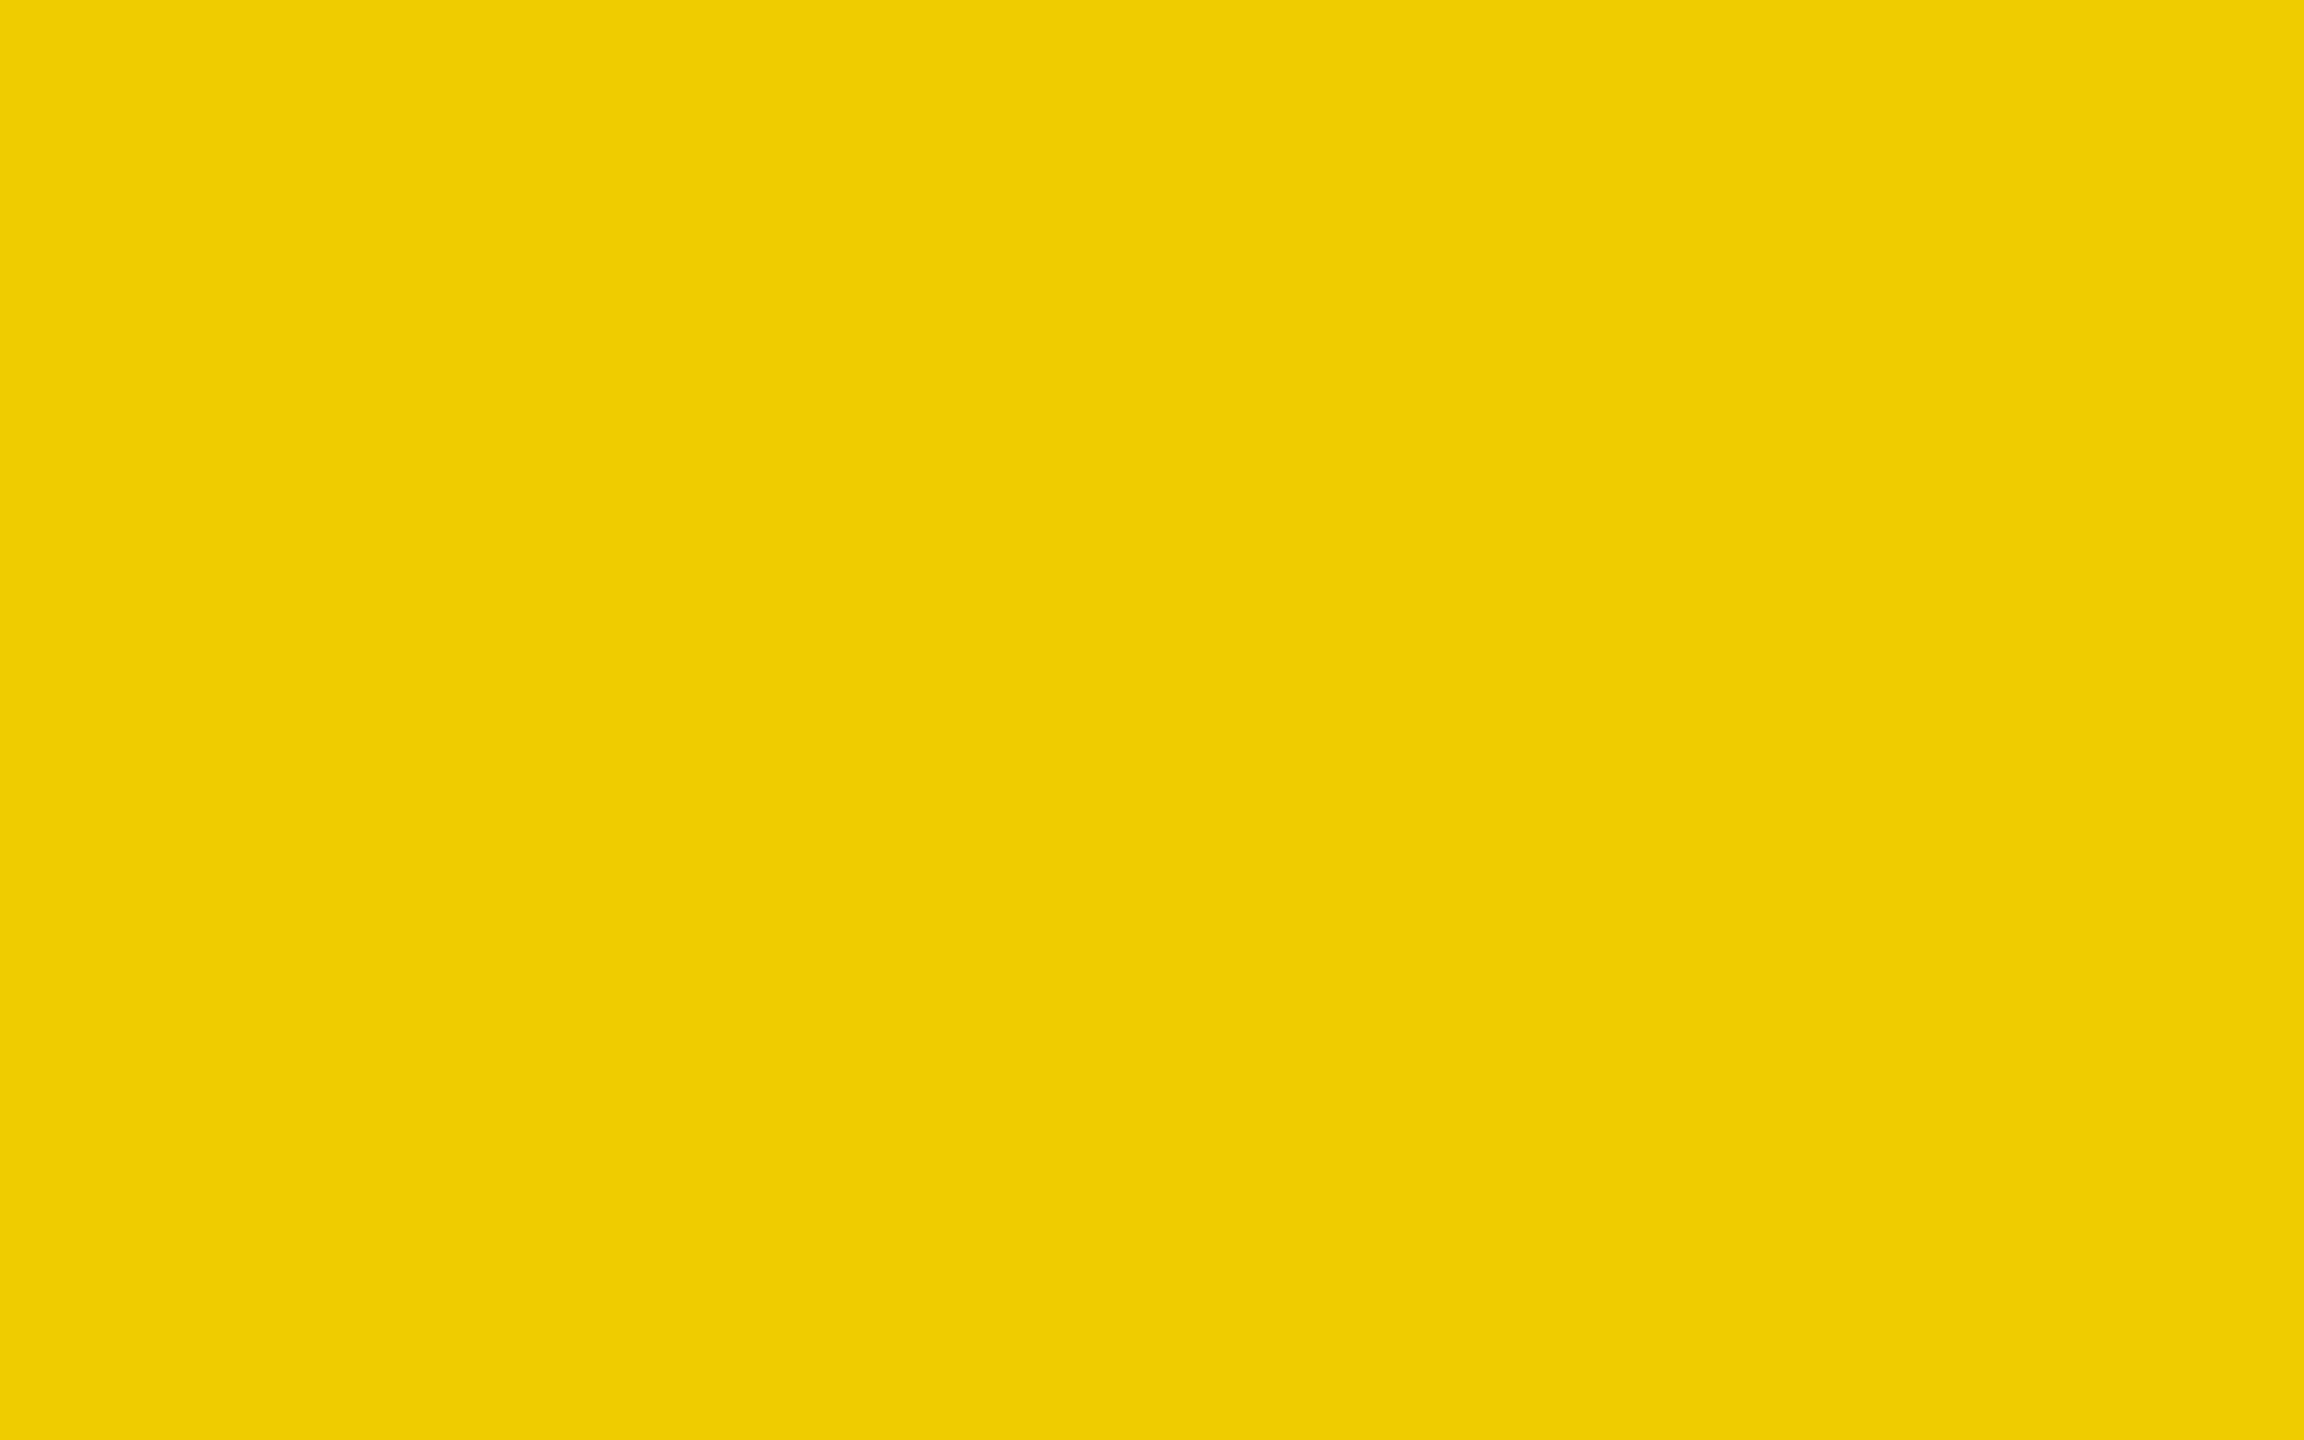 2304x1440 Yellow Munsell Solid Color Background